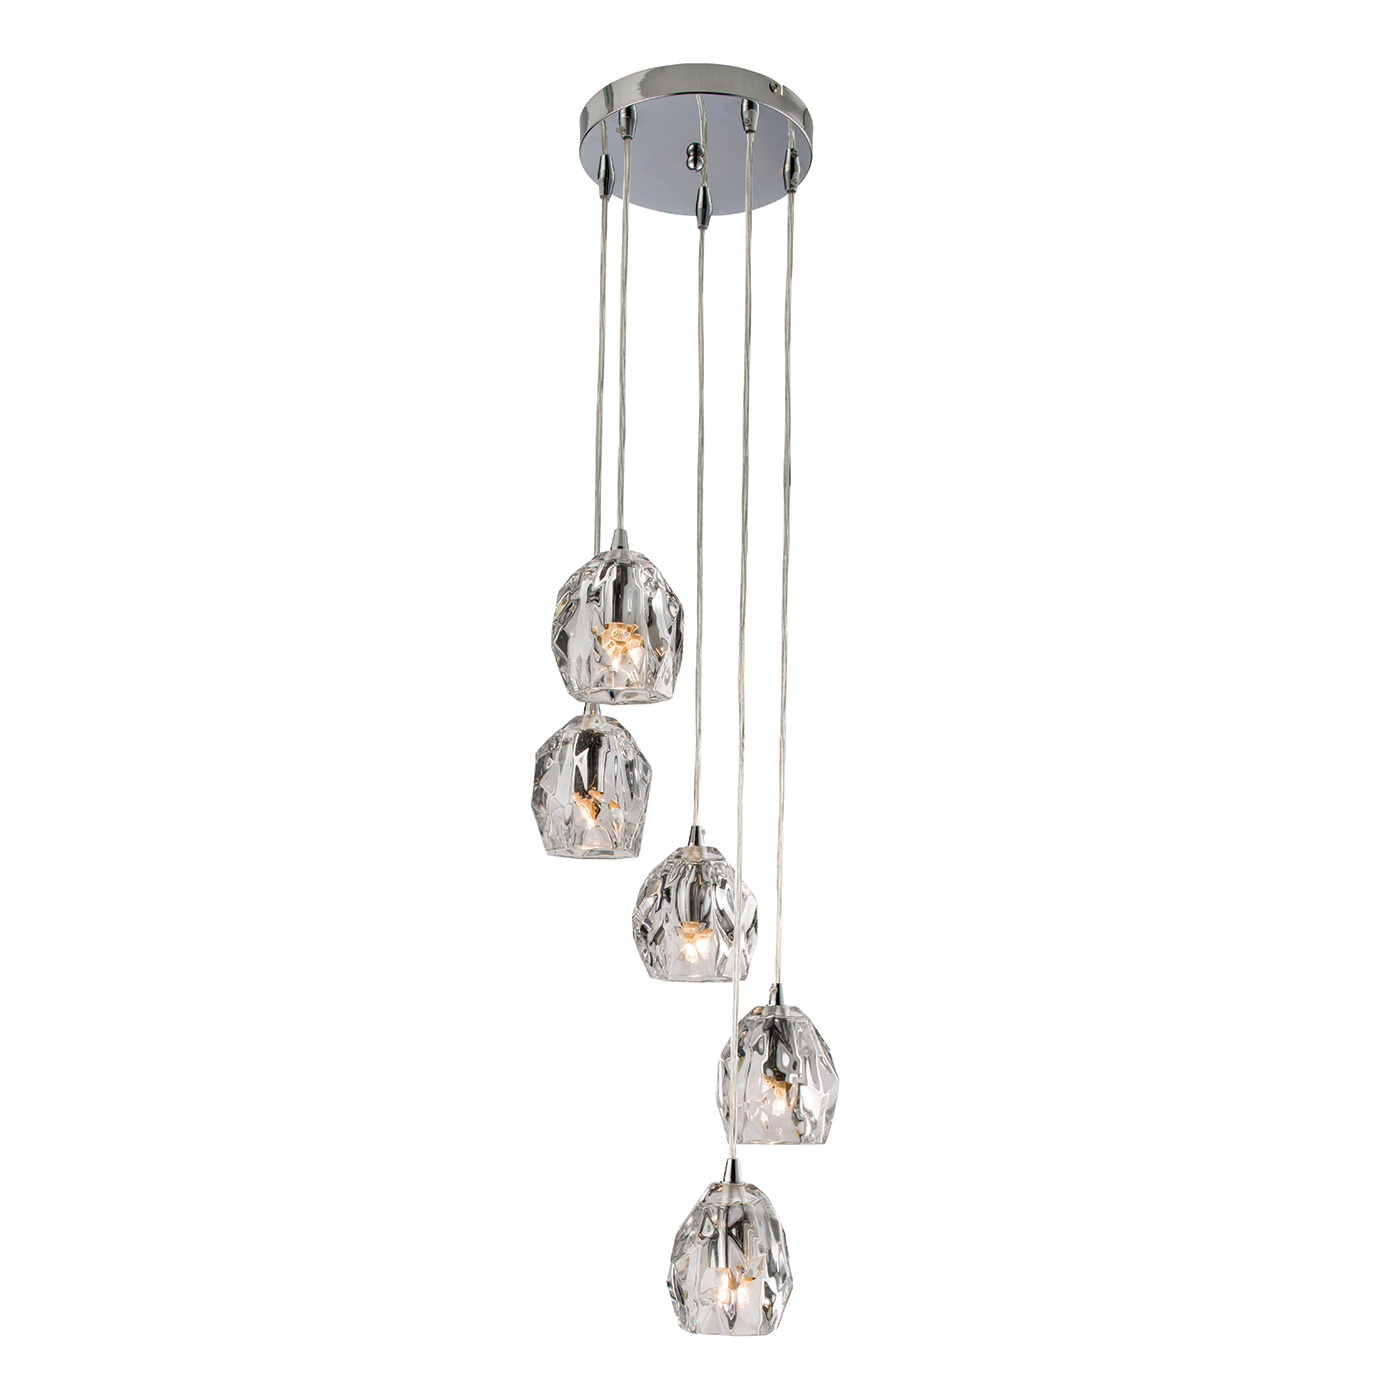 Endon Poitier pendant 5x 18W Chrome effect plate & clear glass